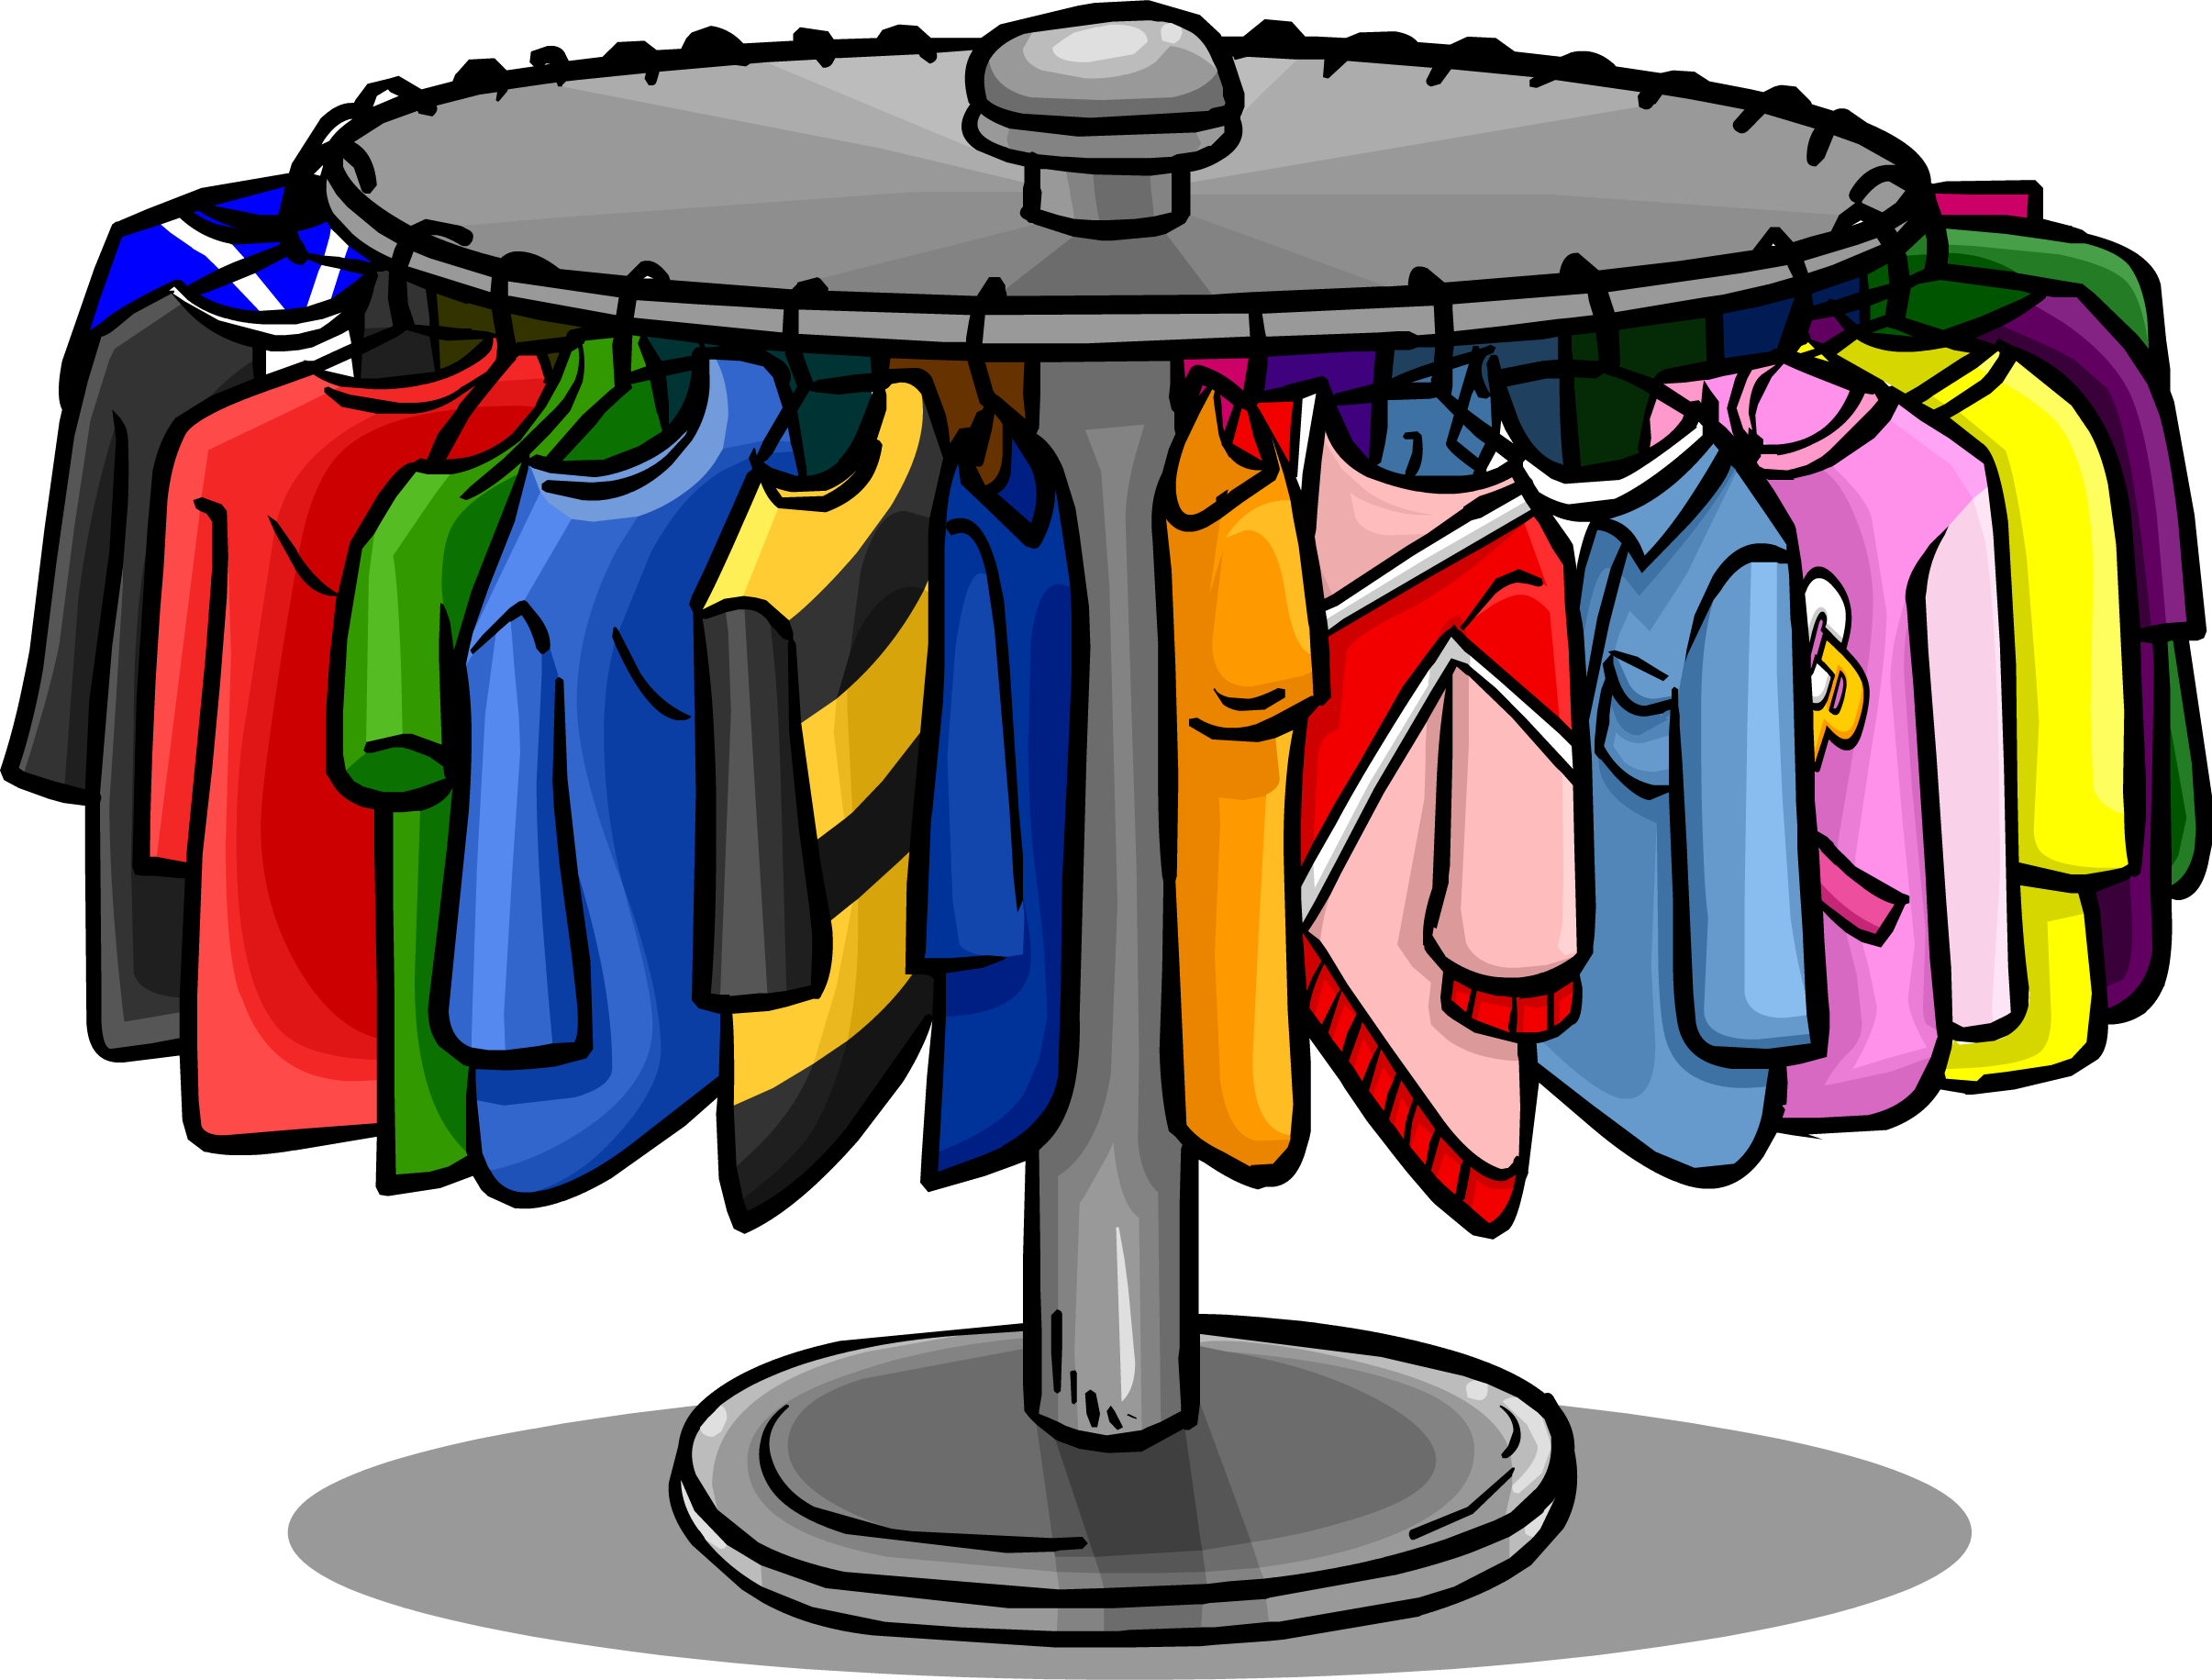 external image Clothes_Rack_furniture_icon_ID_633.png